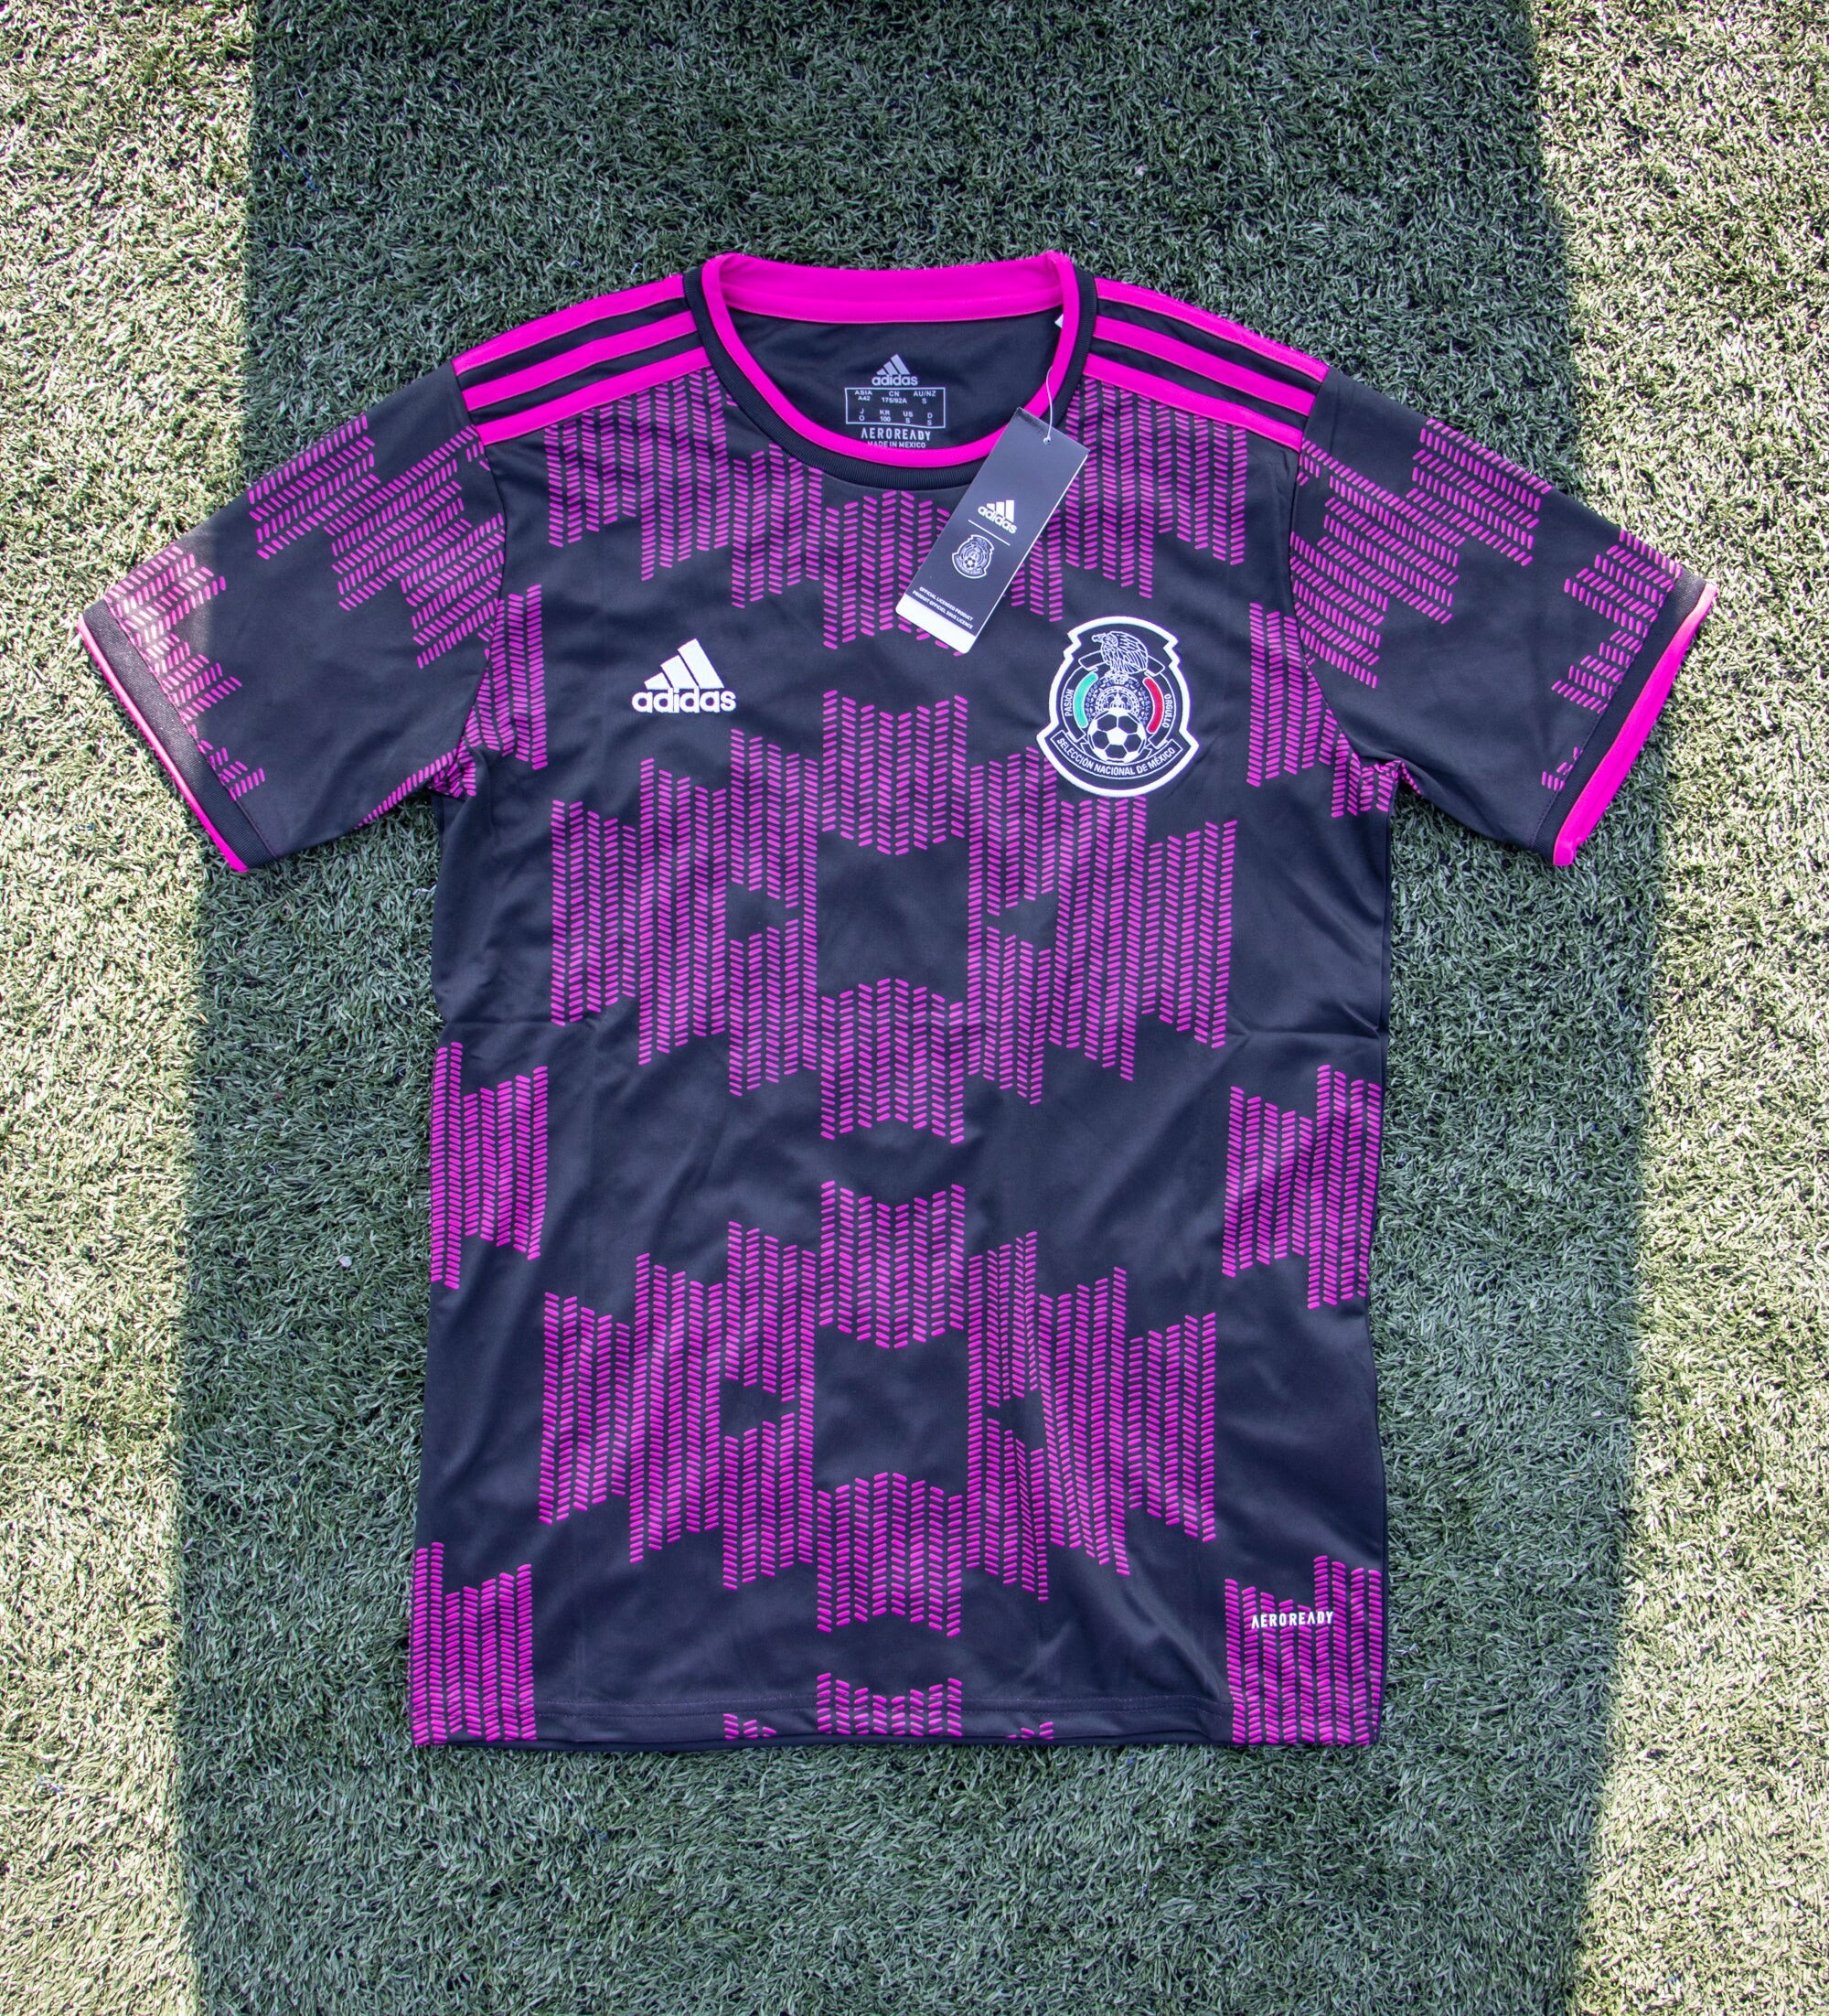 2021/2022 Mexico Home Soccer Jersey   Brand New   Free customization!